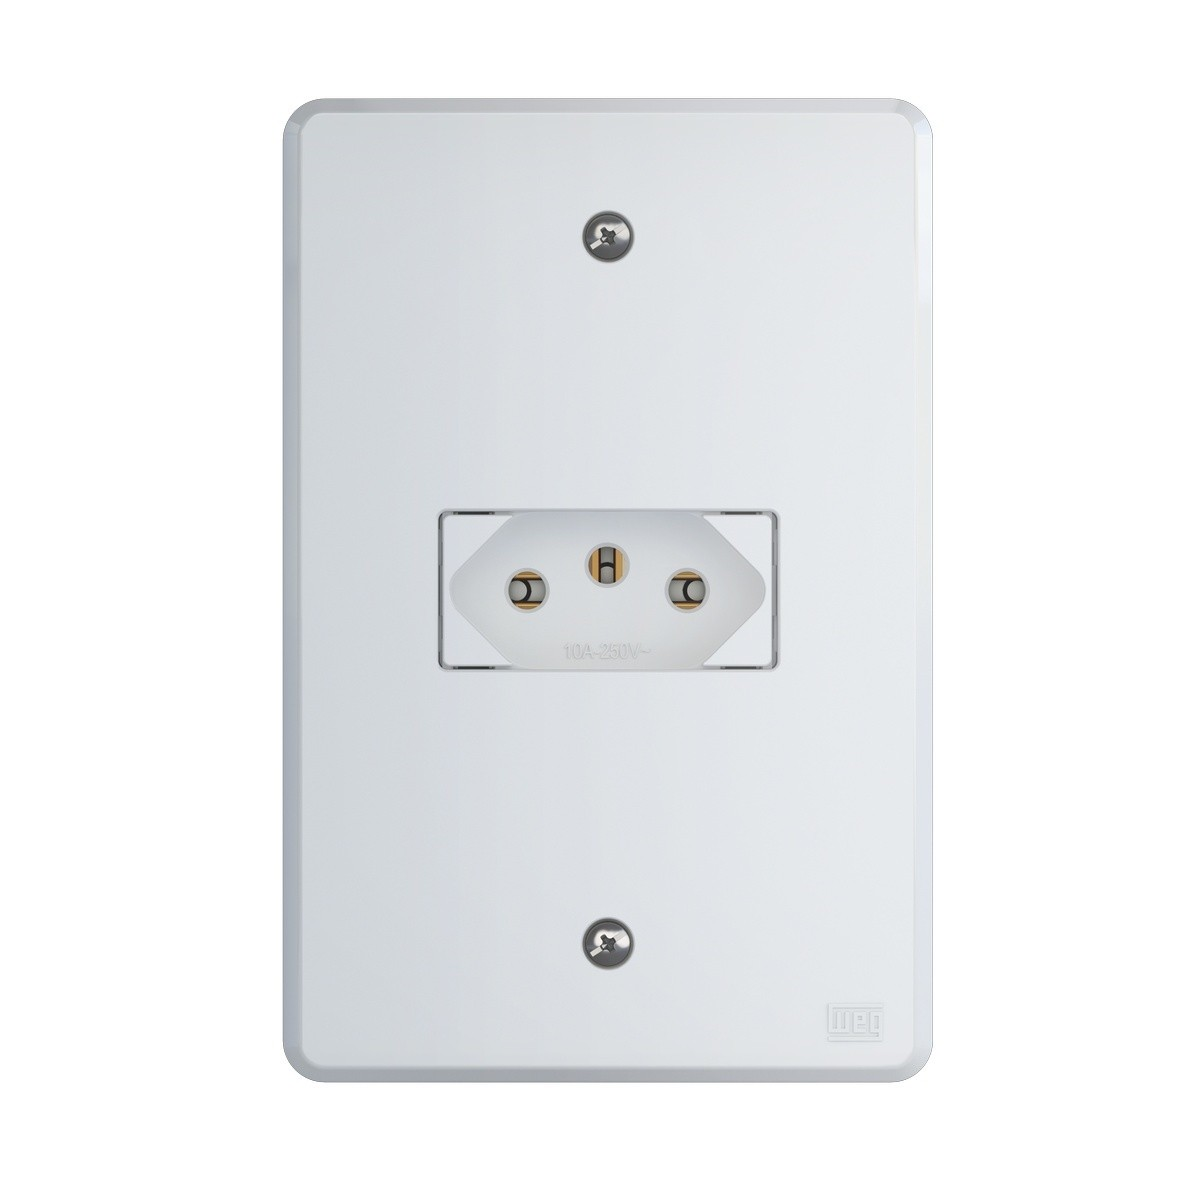 TOMADA WEG EQUILLE SIMPLES 2P+T 10A 250V